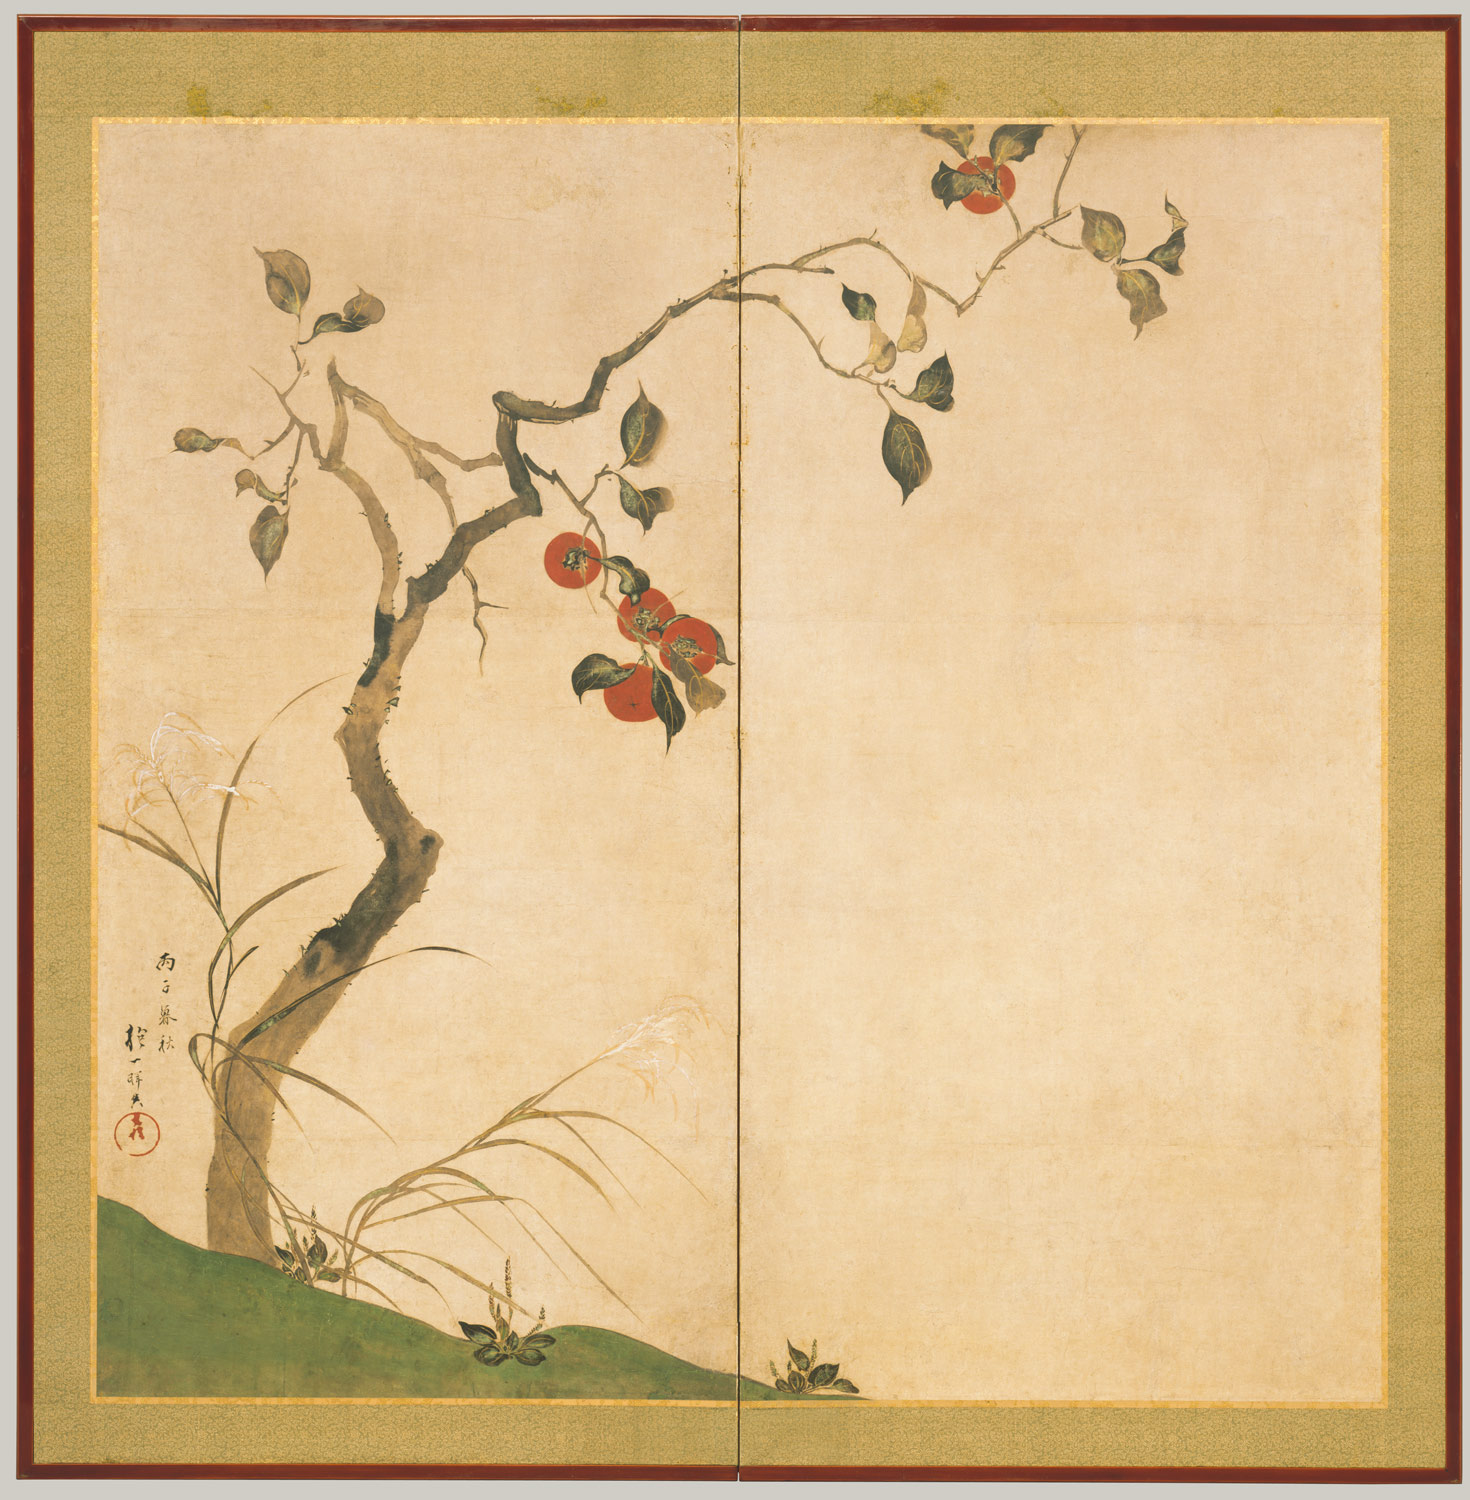 painting formats in east asian art essay heilbrunn timeline of persimmon tree